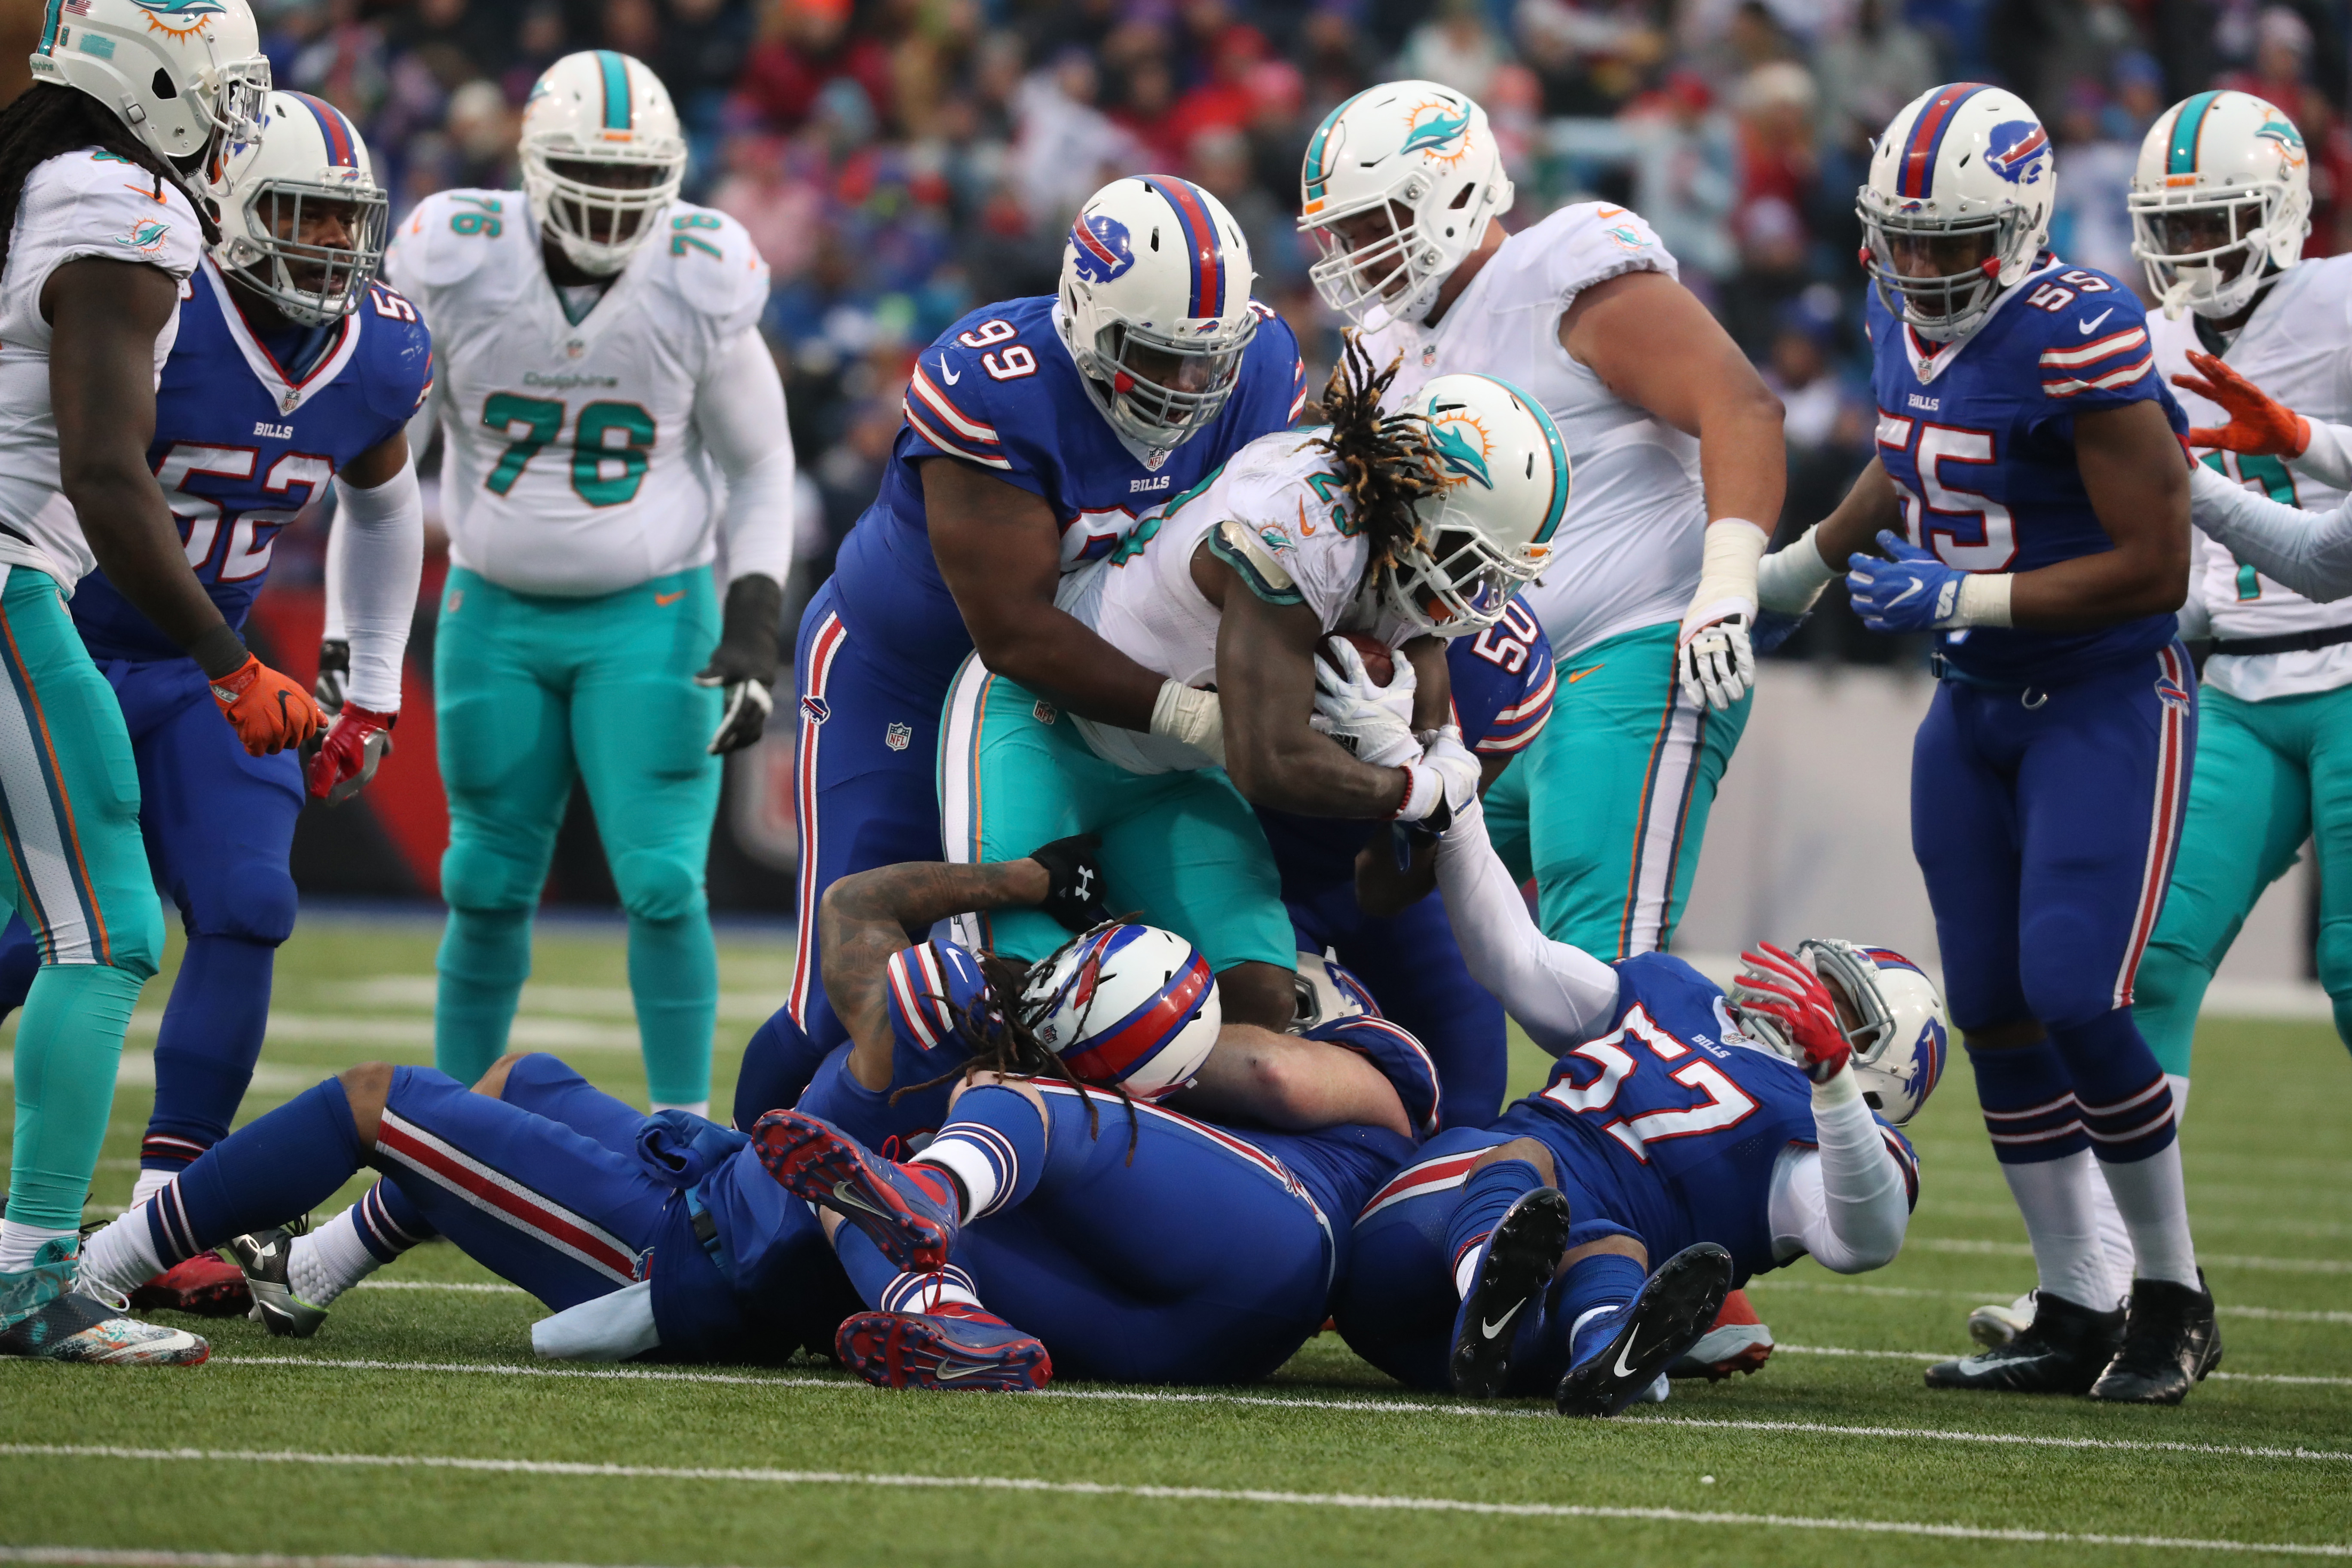 Miami Dolphins running back Jay Ajayi (23) rushes for a first down in the third quarter.  (James P. McCoy/Buffalo News)